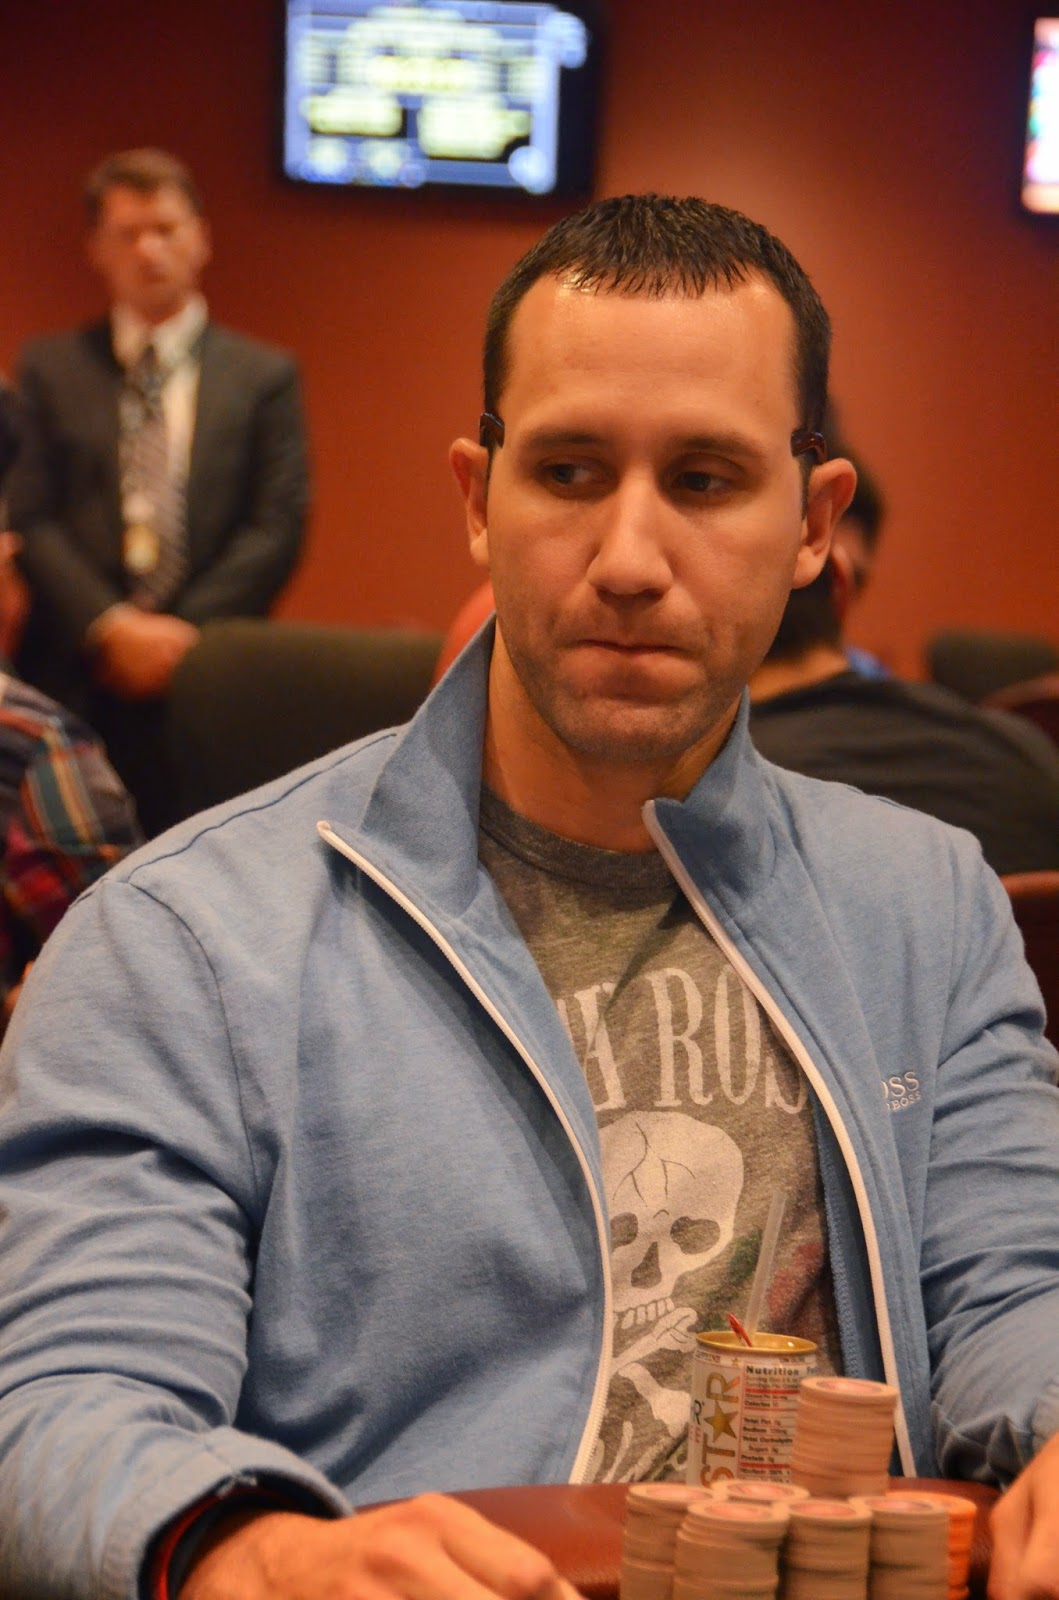 Parx big stax vii big stax 1500 day 3 9th place roman 9 554 for Parx poker room live game report